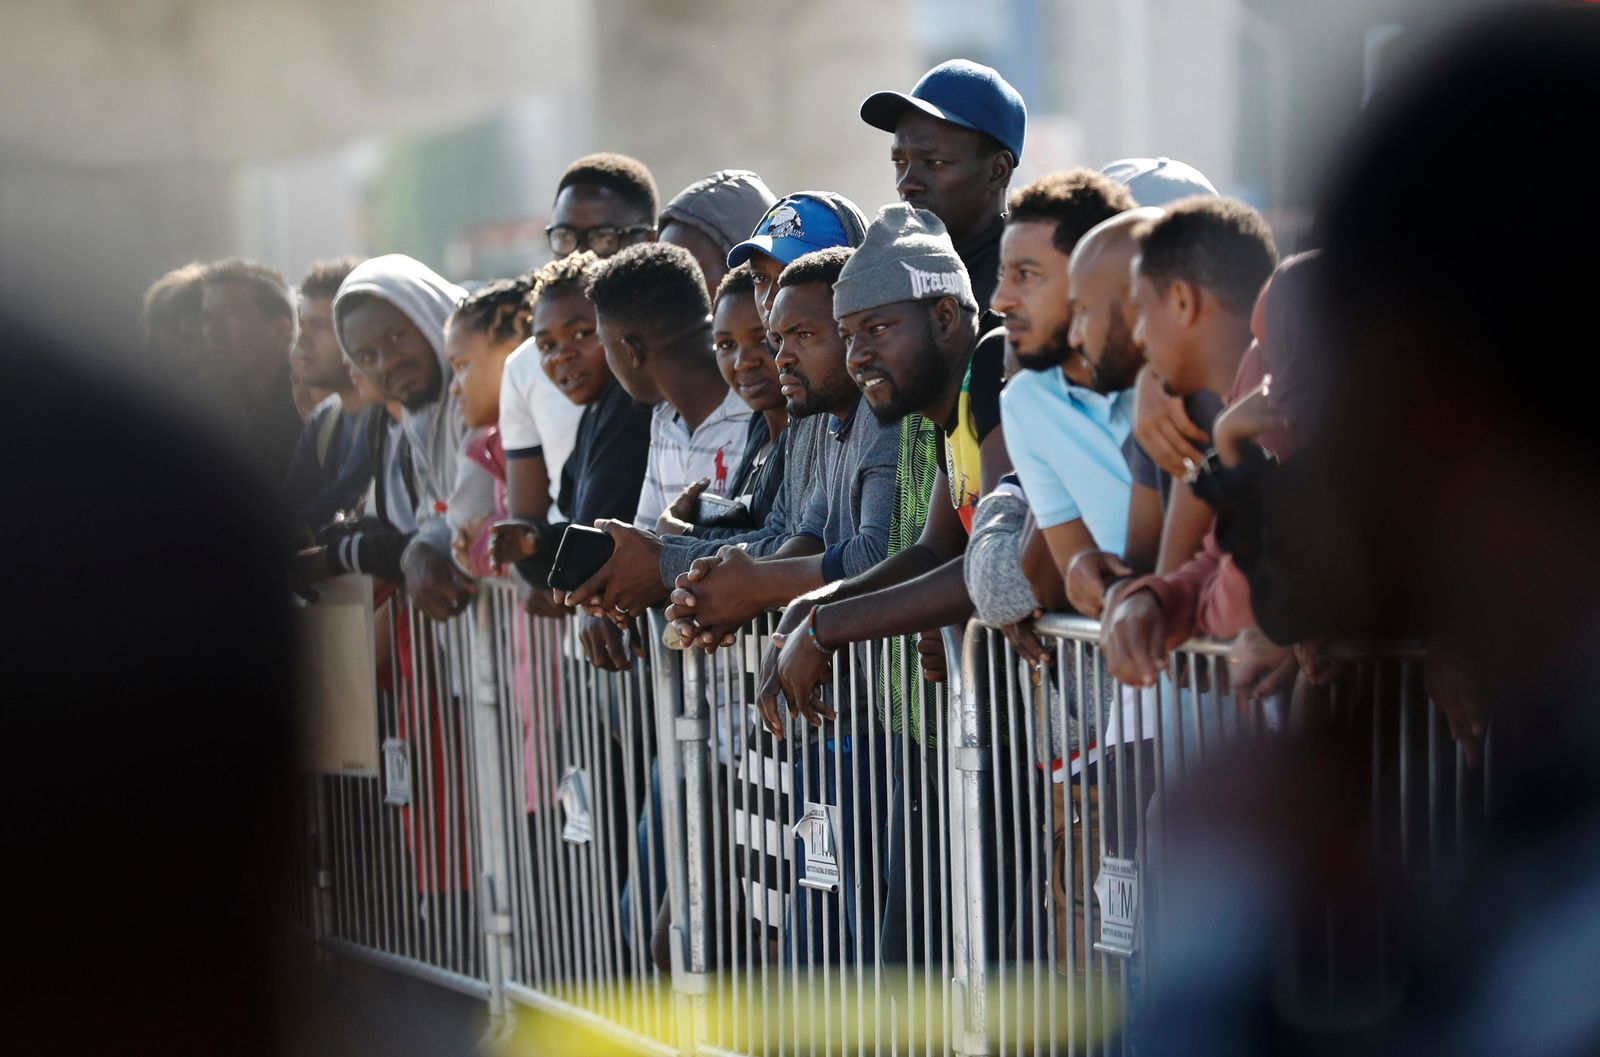 People wait to apply for asylum in the United States along the border Tuesday, July 16, 2019, in Tijuana, Mexico. (AP Photo/Gregory Bull)